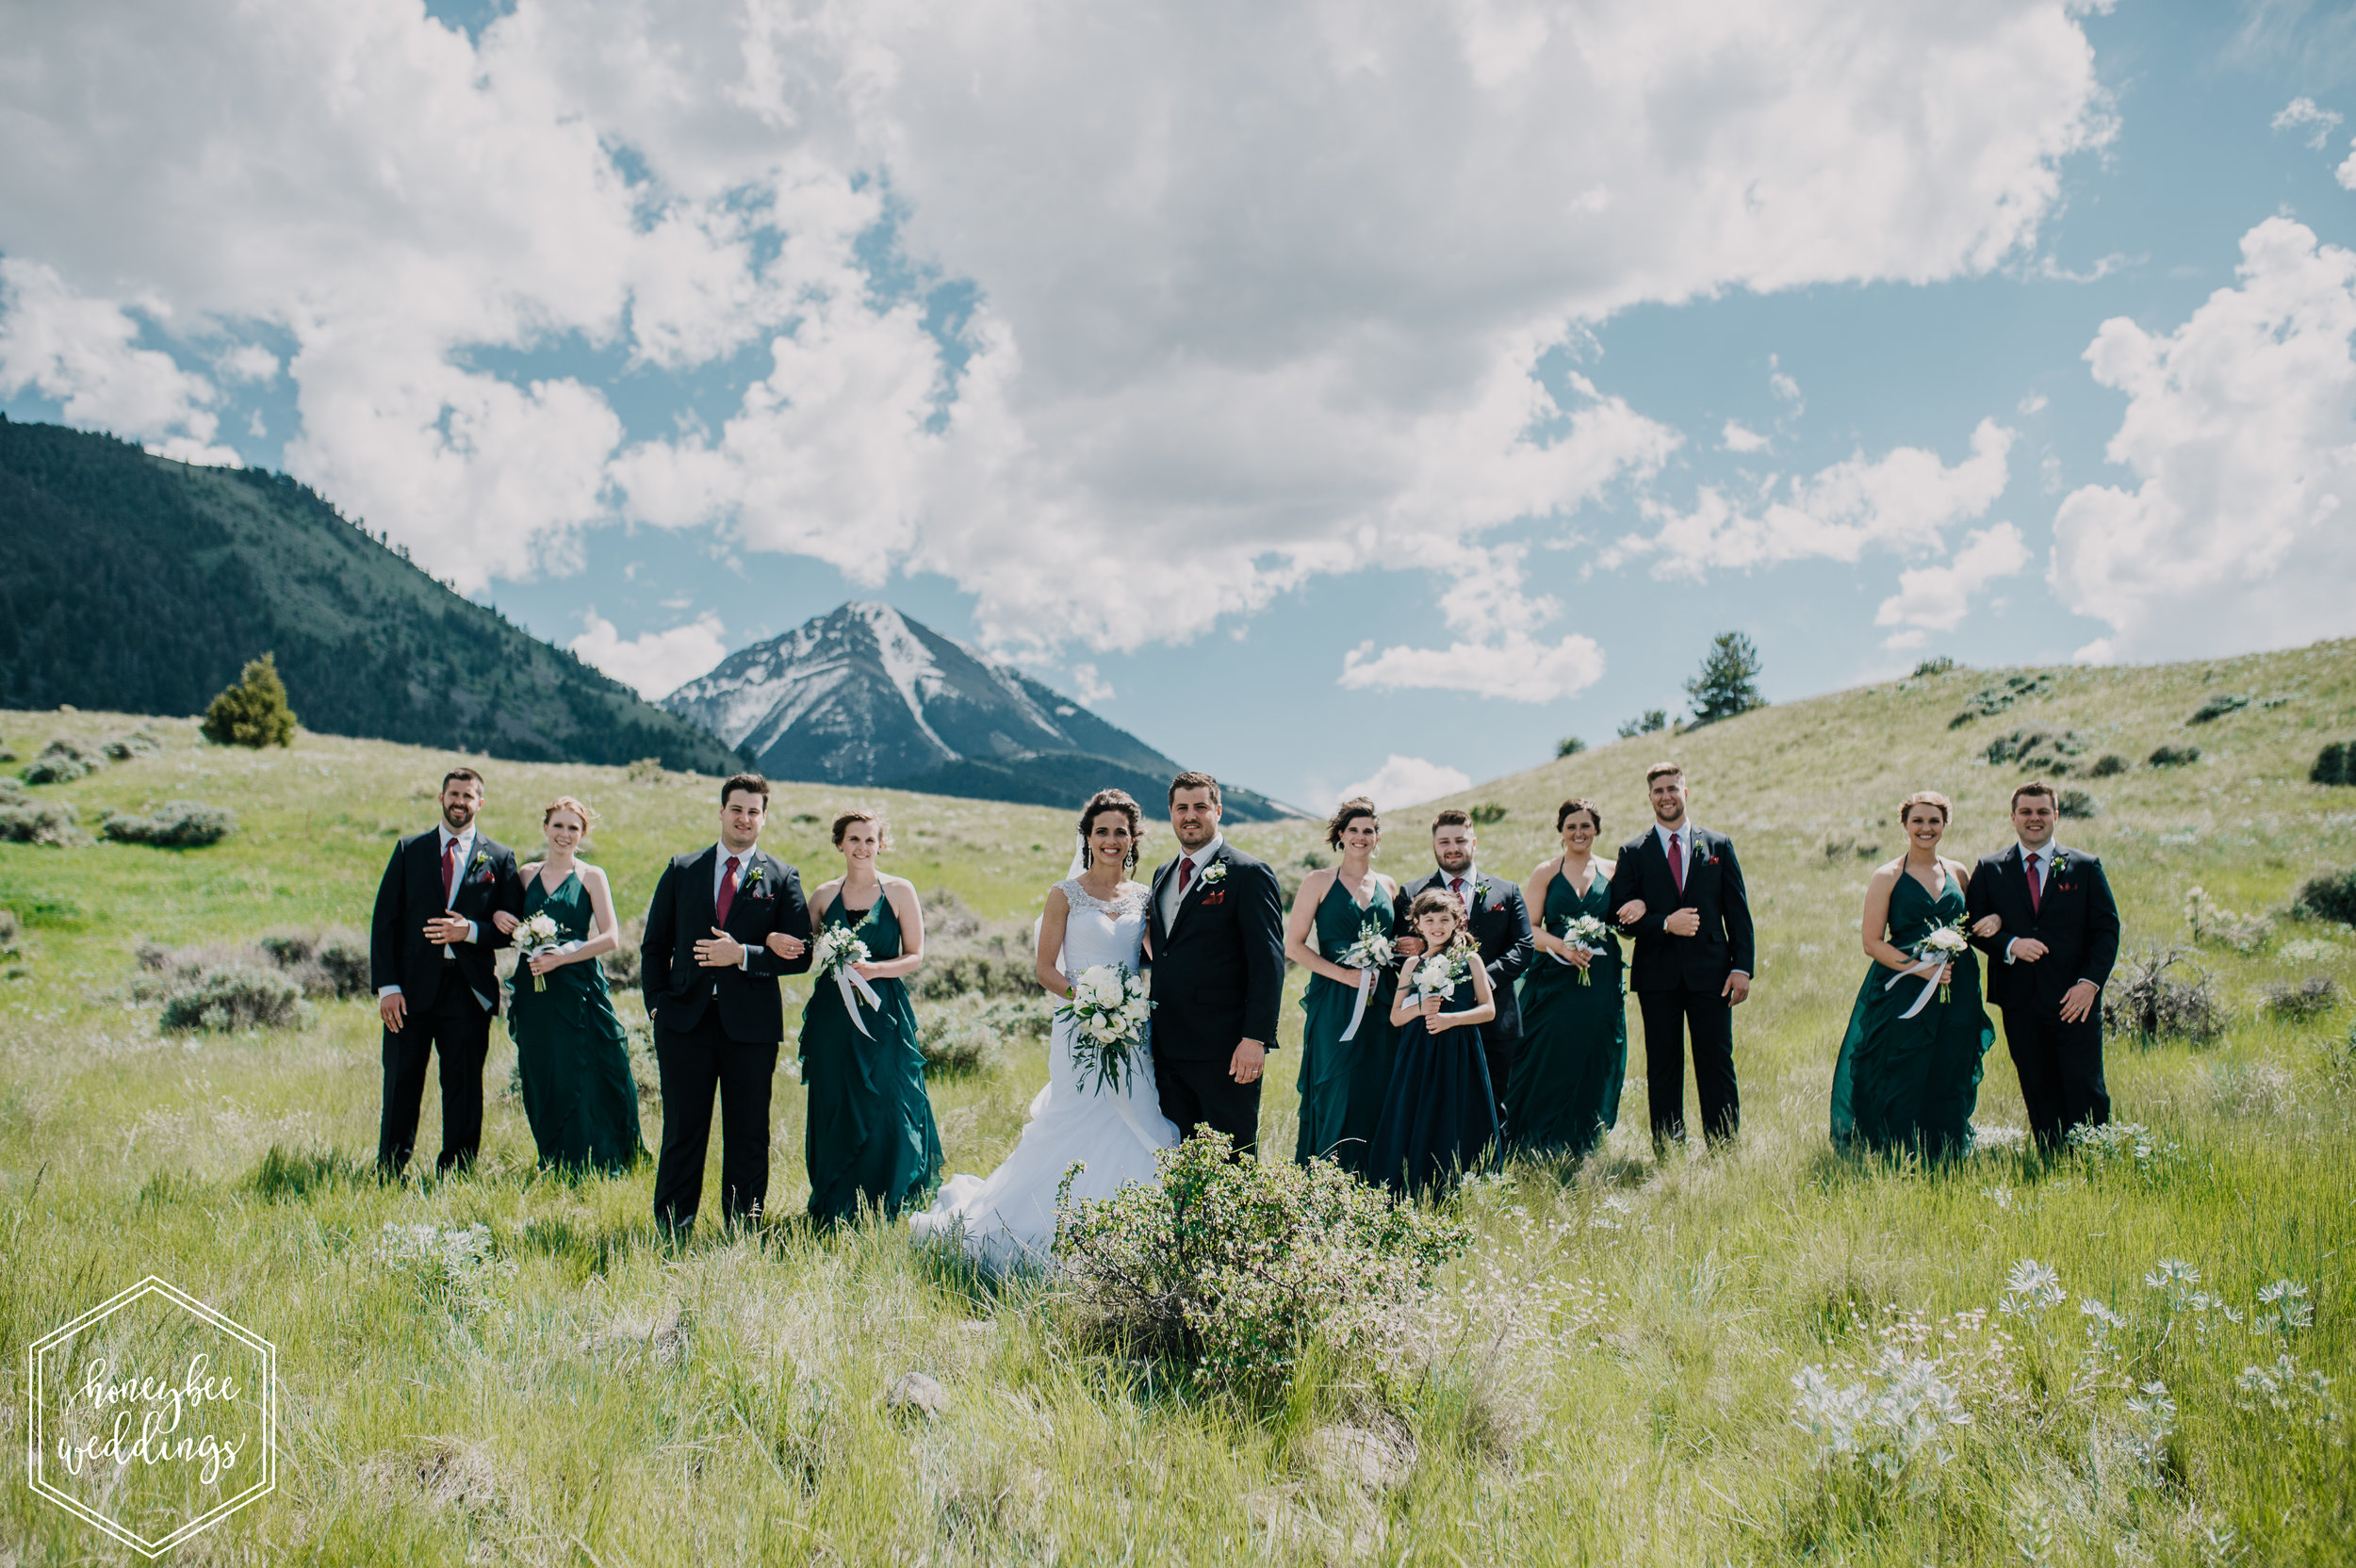 54 Chico Hotsprings Wedding_Bowdino 2018-3004-2.jpg